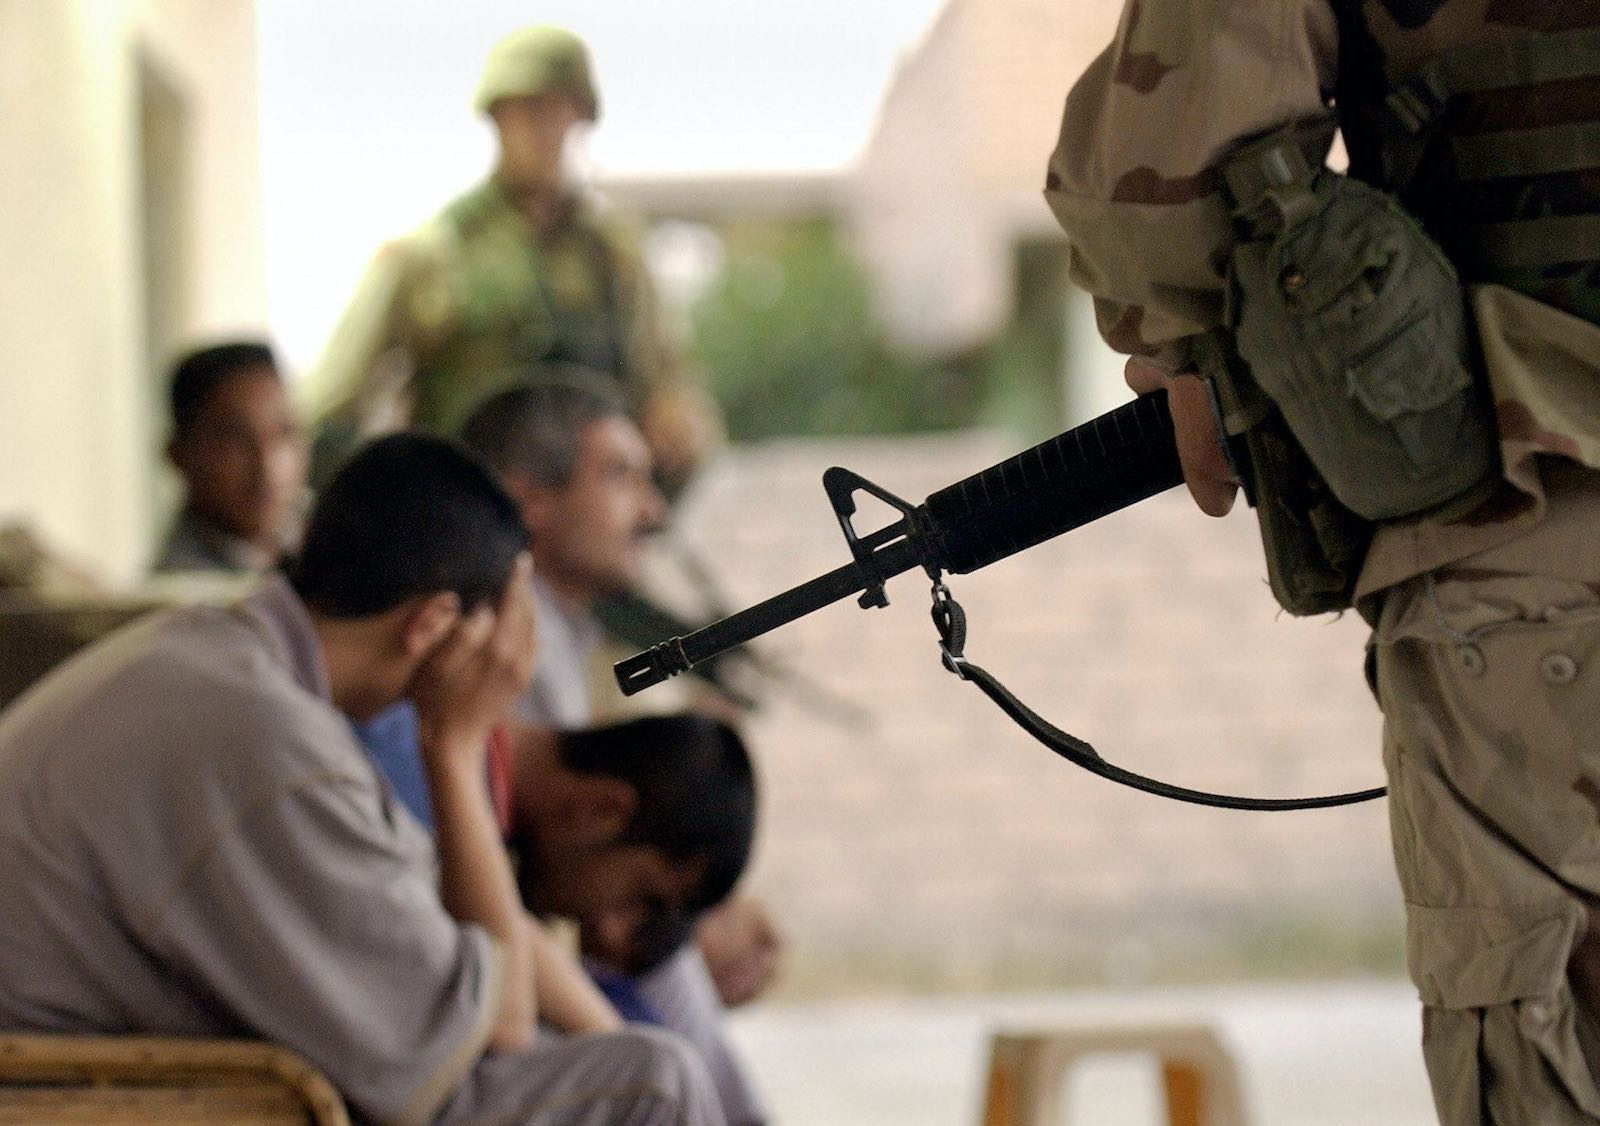 US Army soldiers guarding Iraqi detainees, 2003